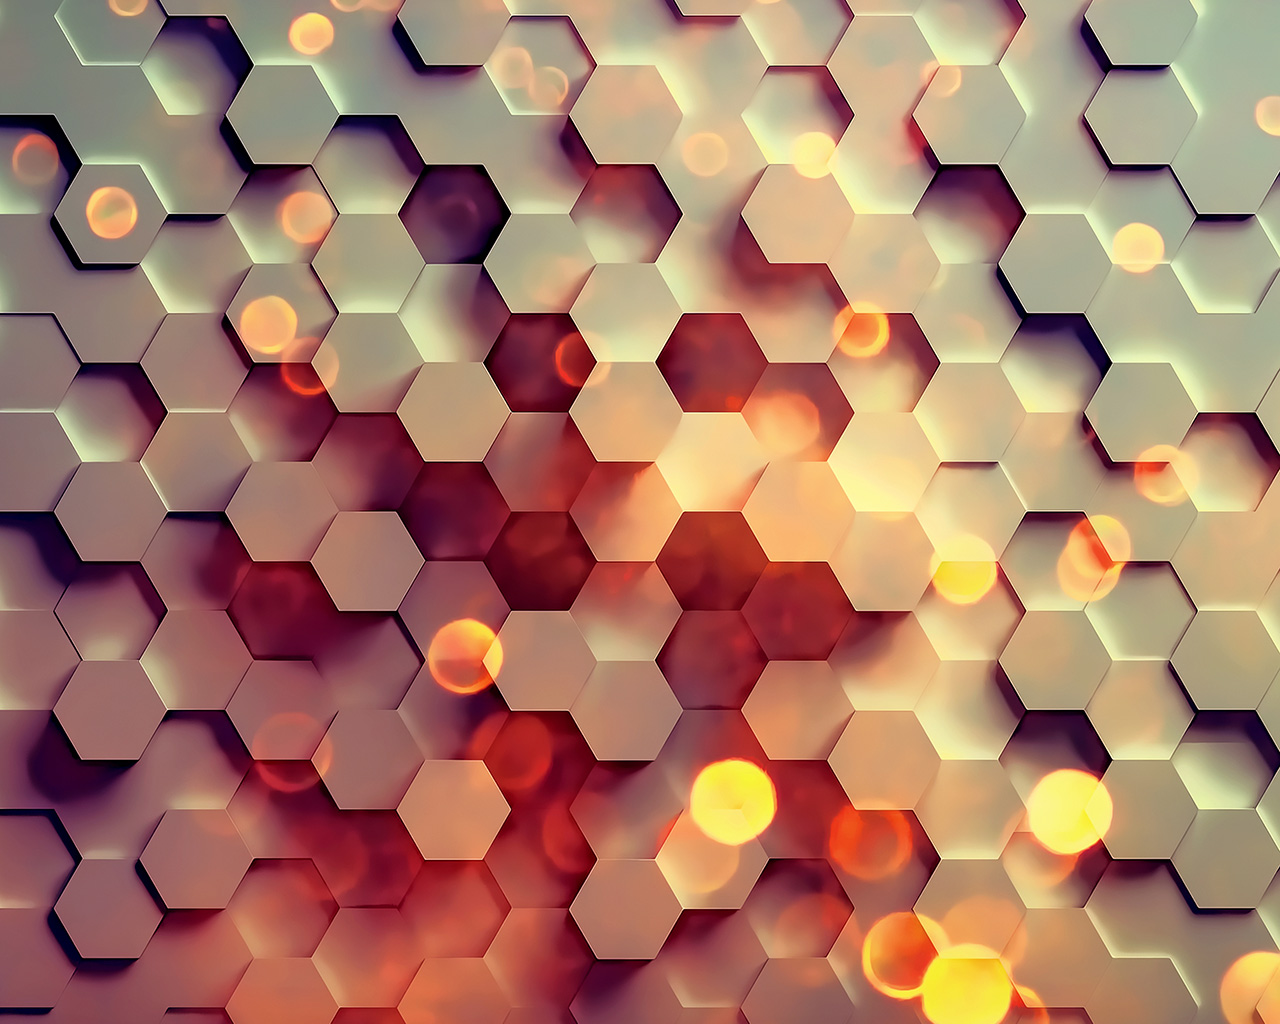 Simple Fall Hd Wallpaper Vy40 Honey Hexagon Digital Abstract Pattern Background